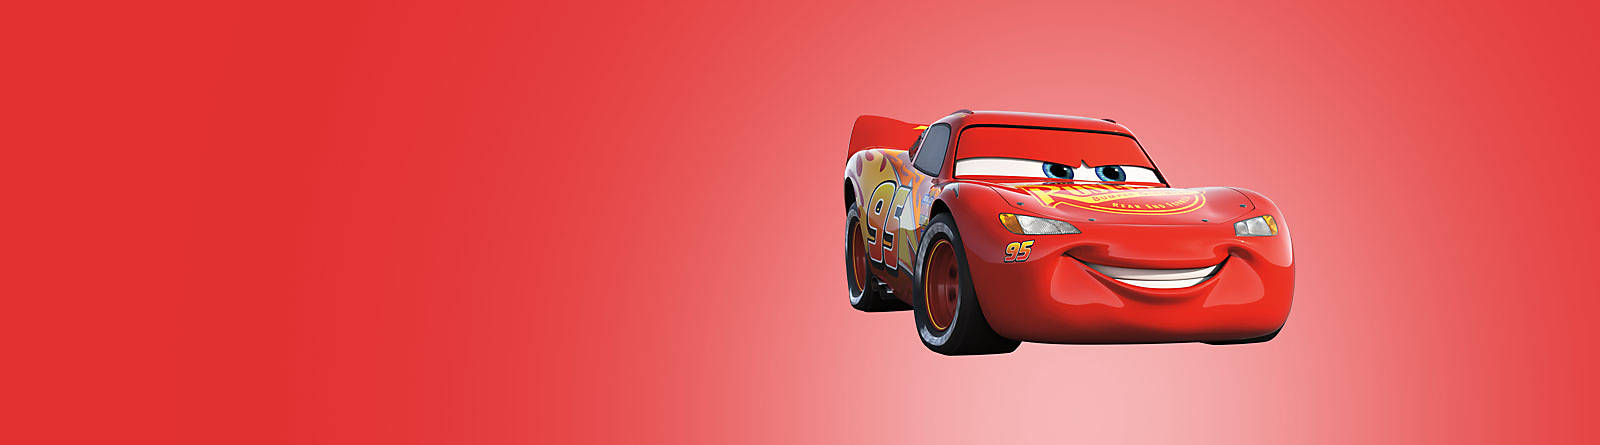 Flash mcqueen disney store en ligne devient shopdisney - Flash mcqueen film gratuit ...